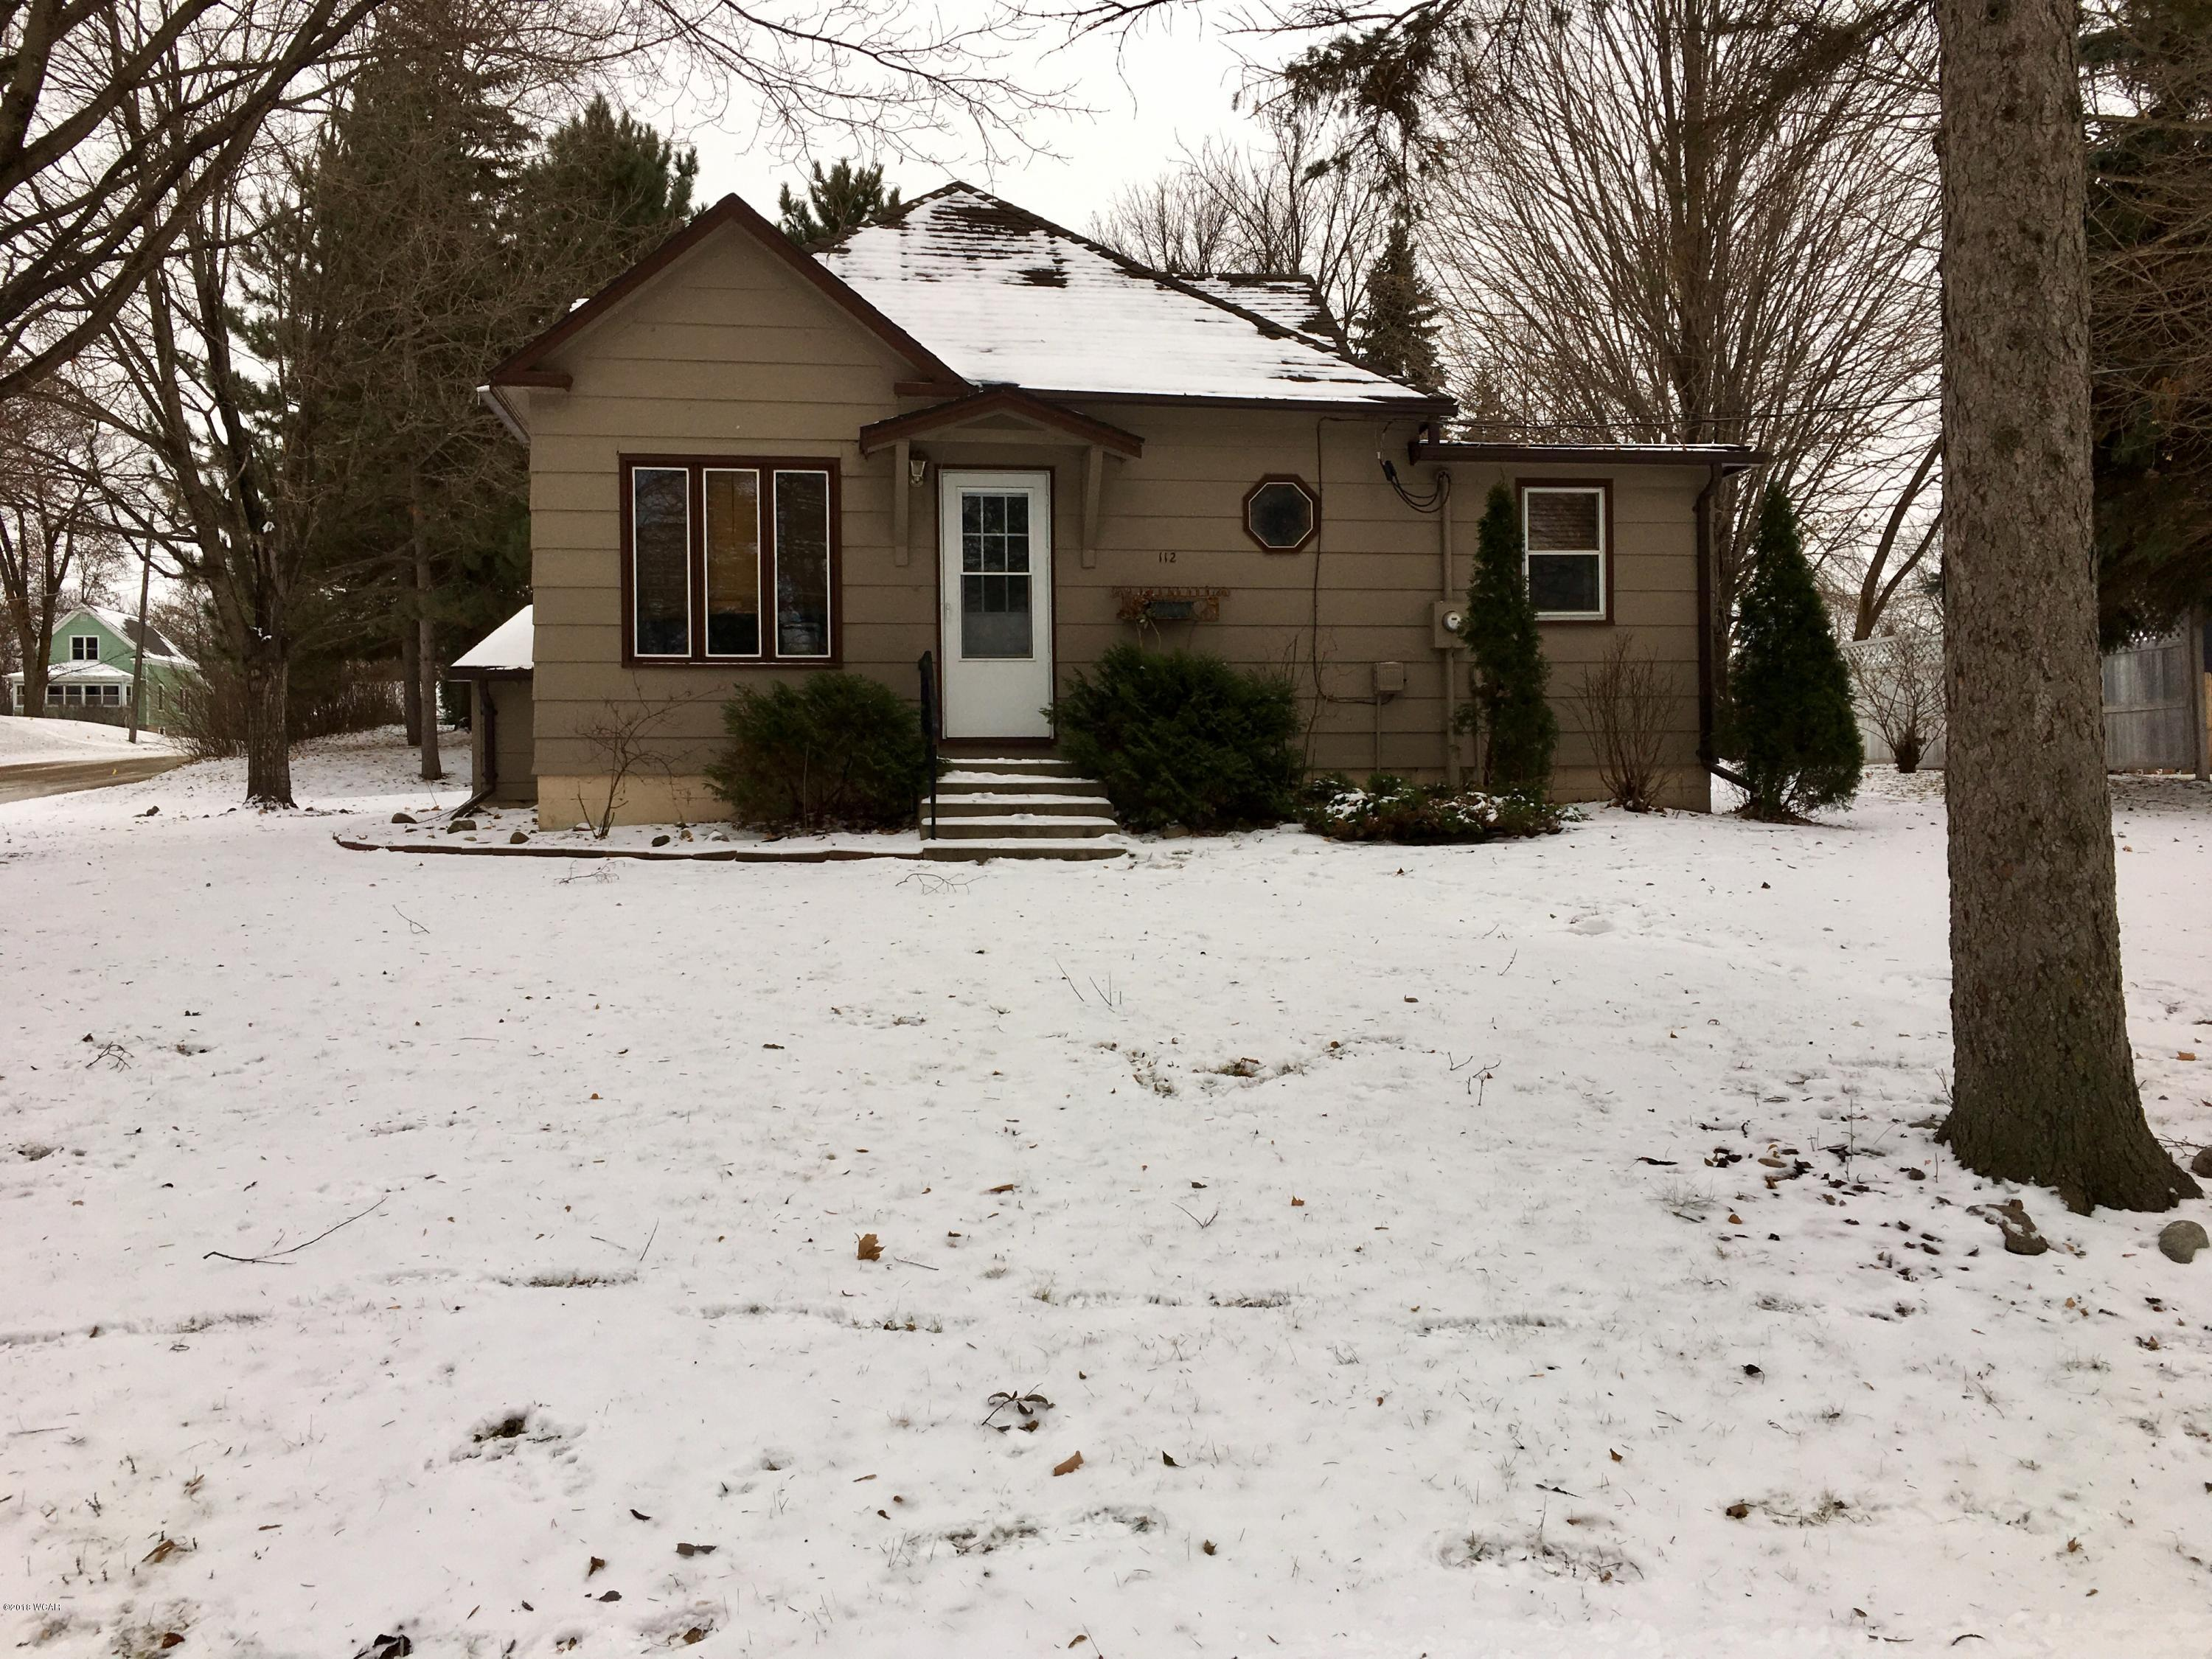 112 3rd Avenue,New London,4 Bedrooms Bedrooms,2 BathroomsBathrooms,Single Family,3rd Avenue,6033087